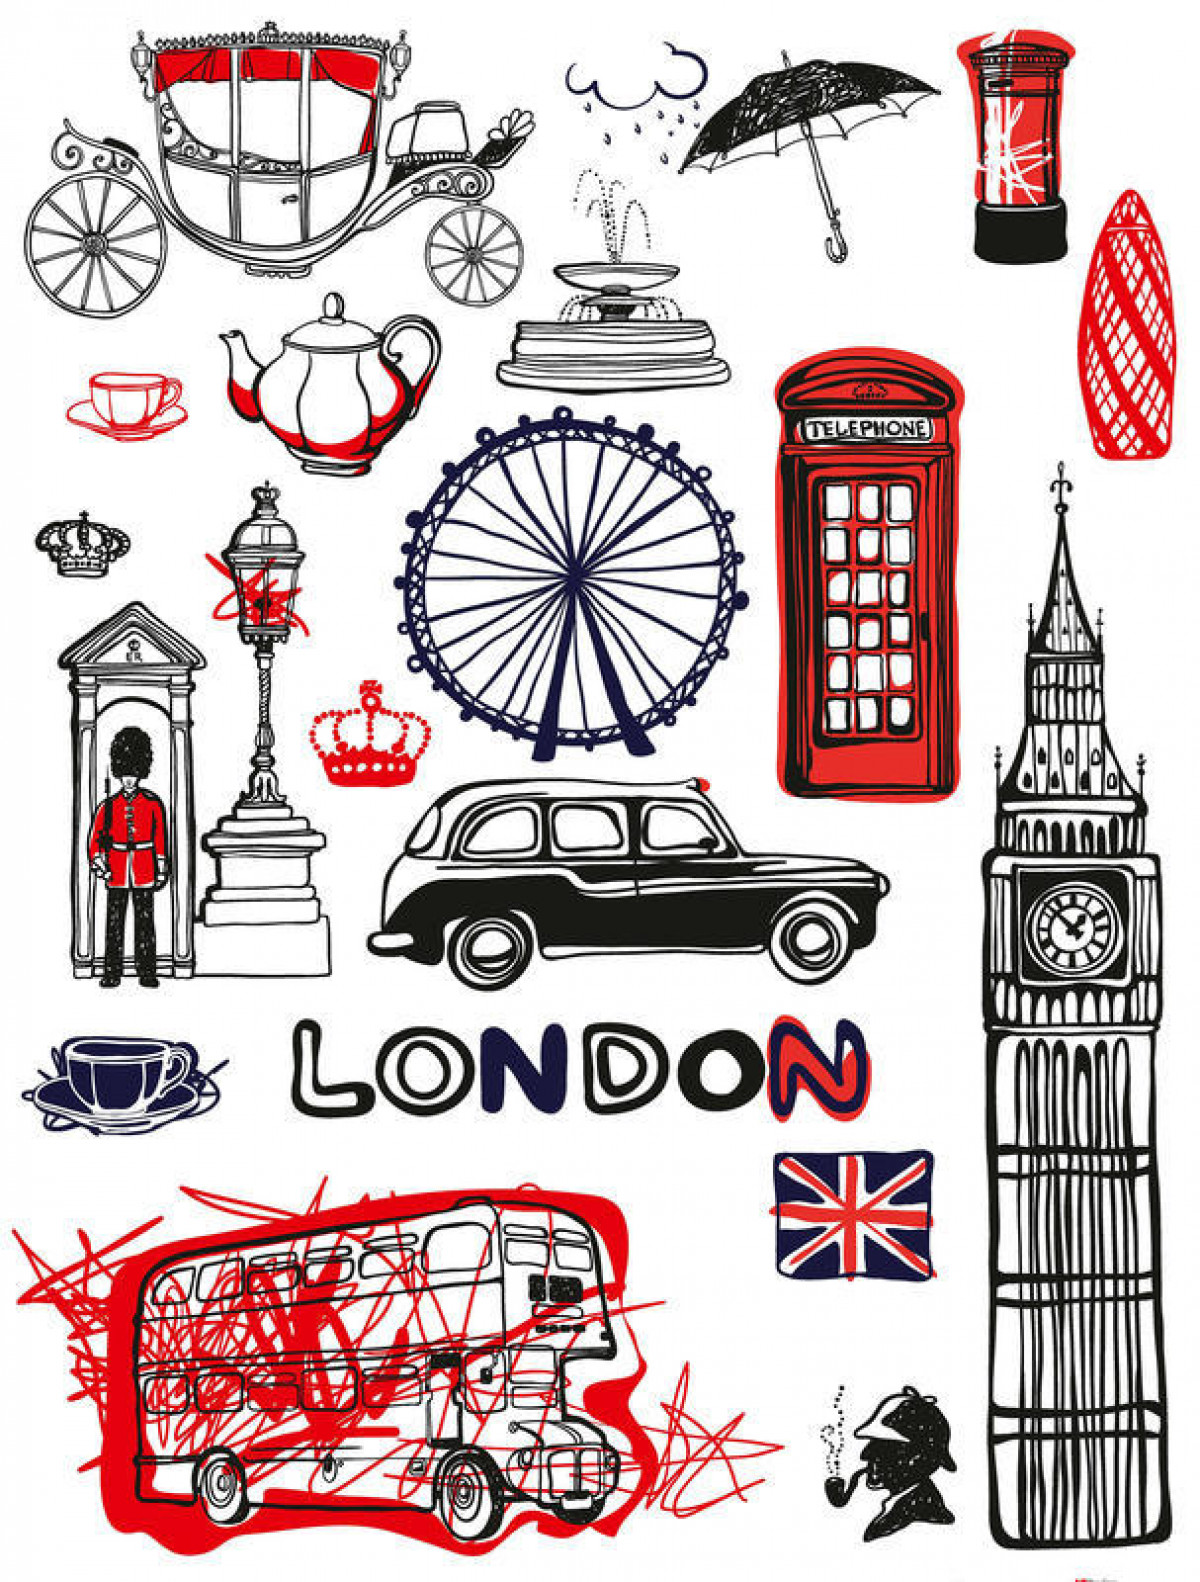 London, Grand sticker mural 65 x 85 cm